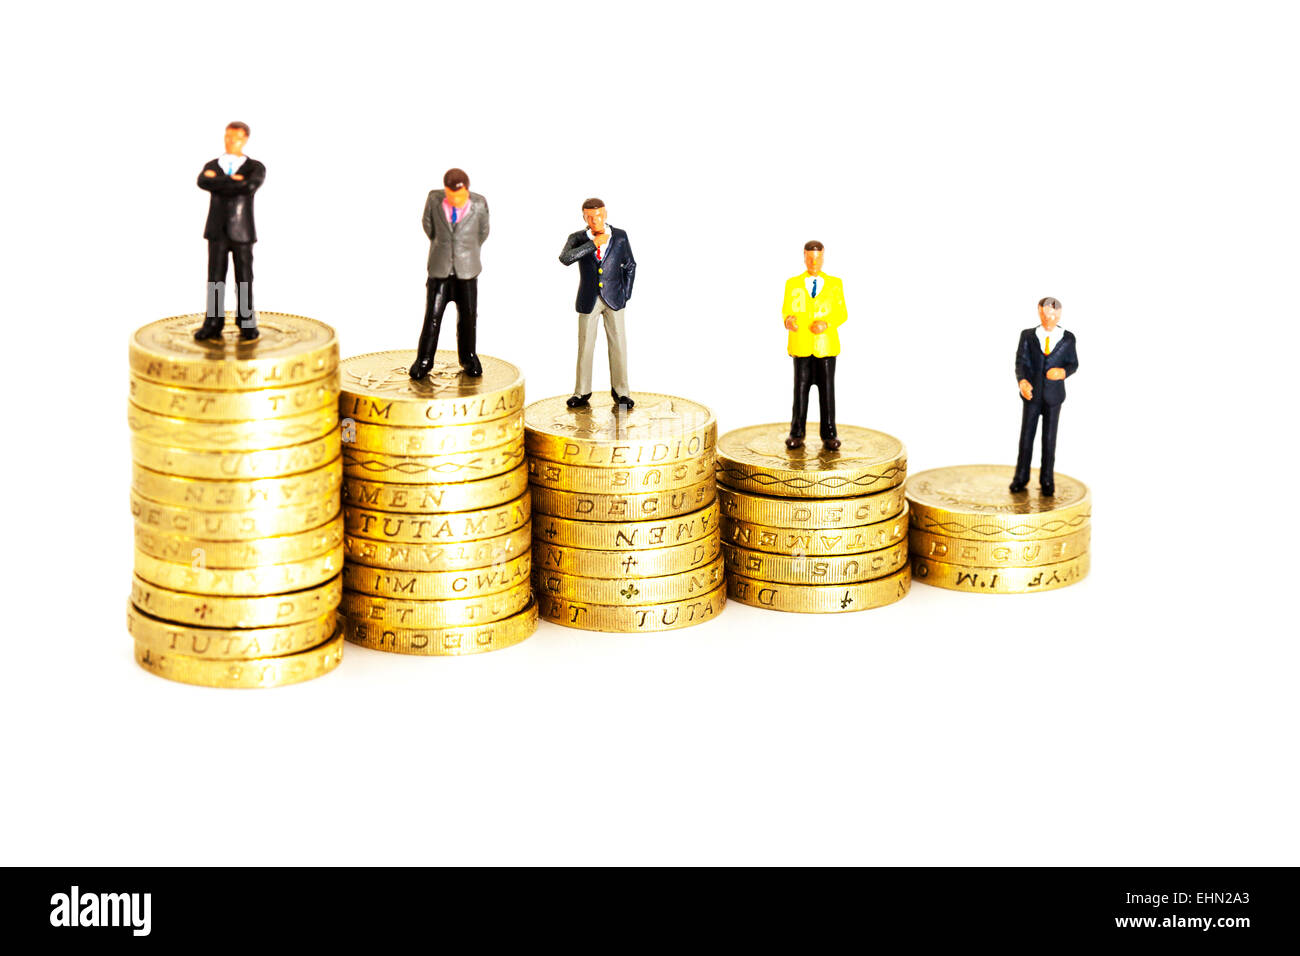 wages comparison compare income salaries salary  pay wage finance money payroll isolated cut out cutout white background - Stock Image